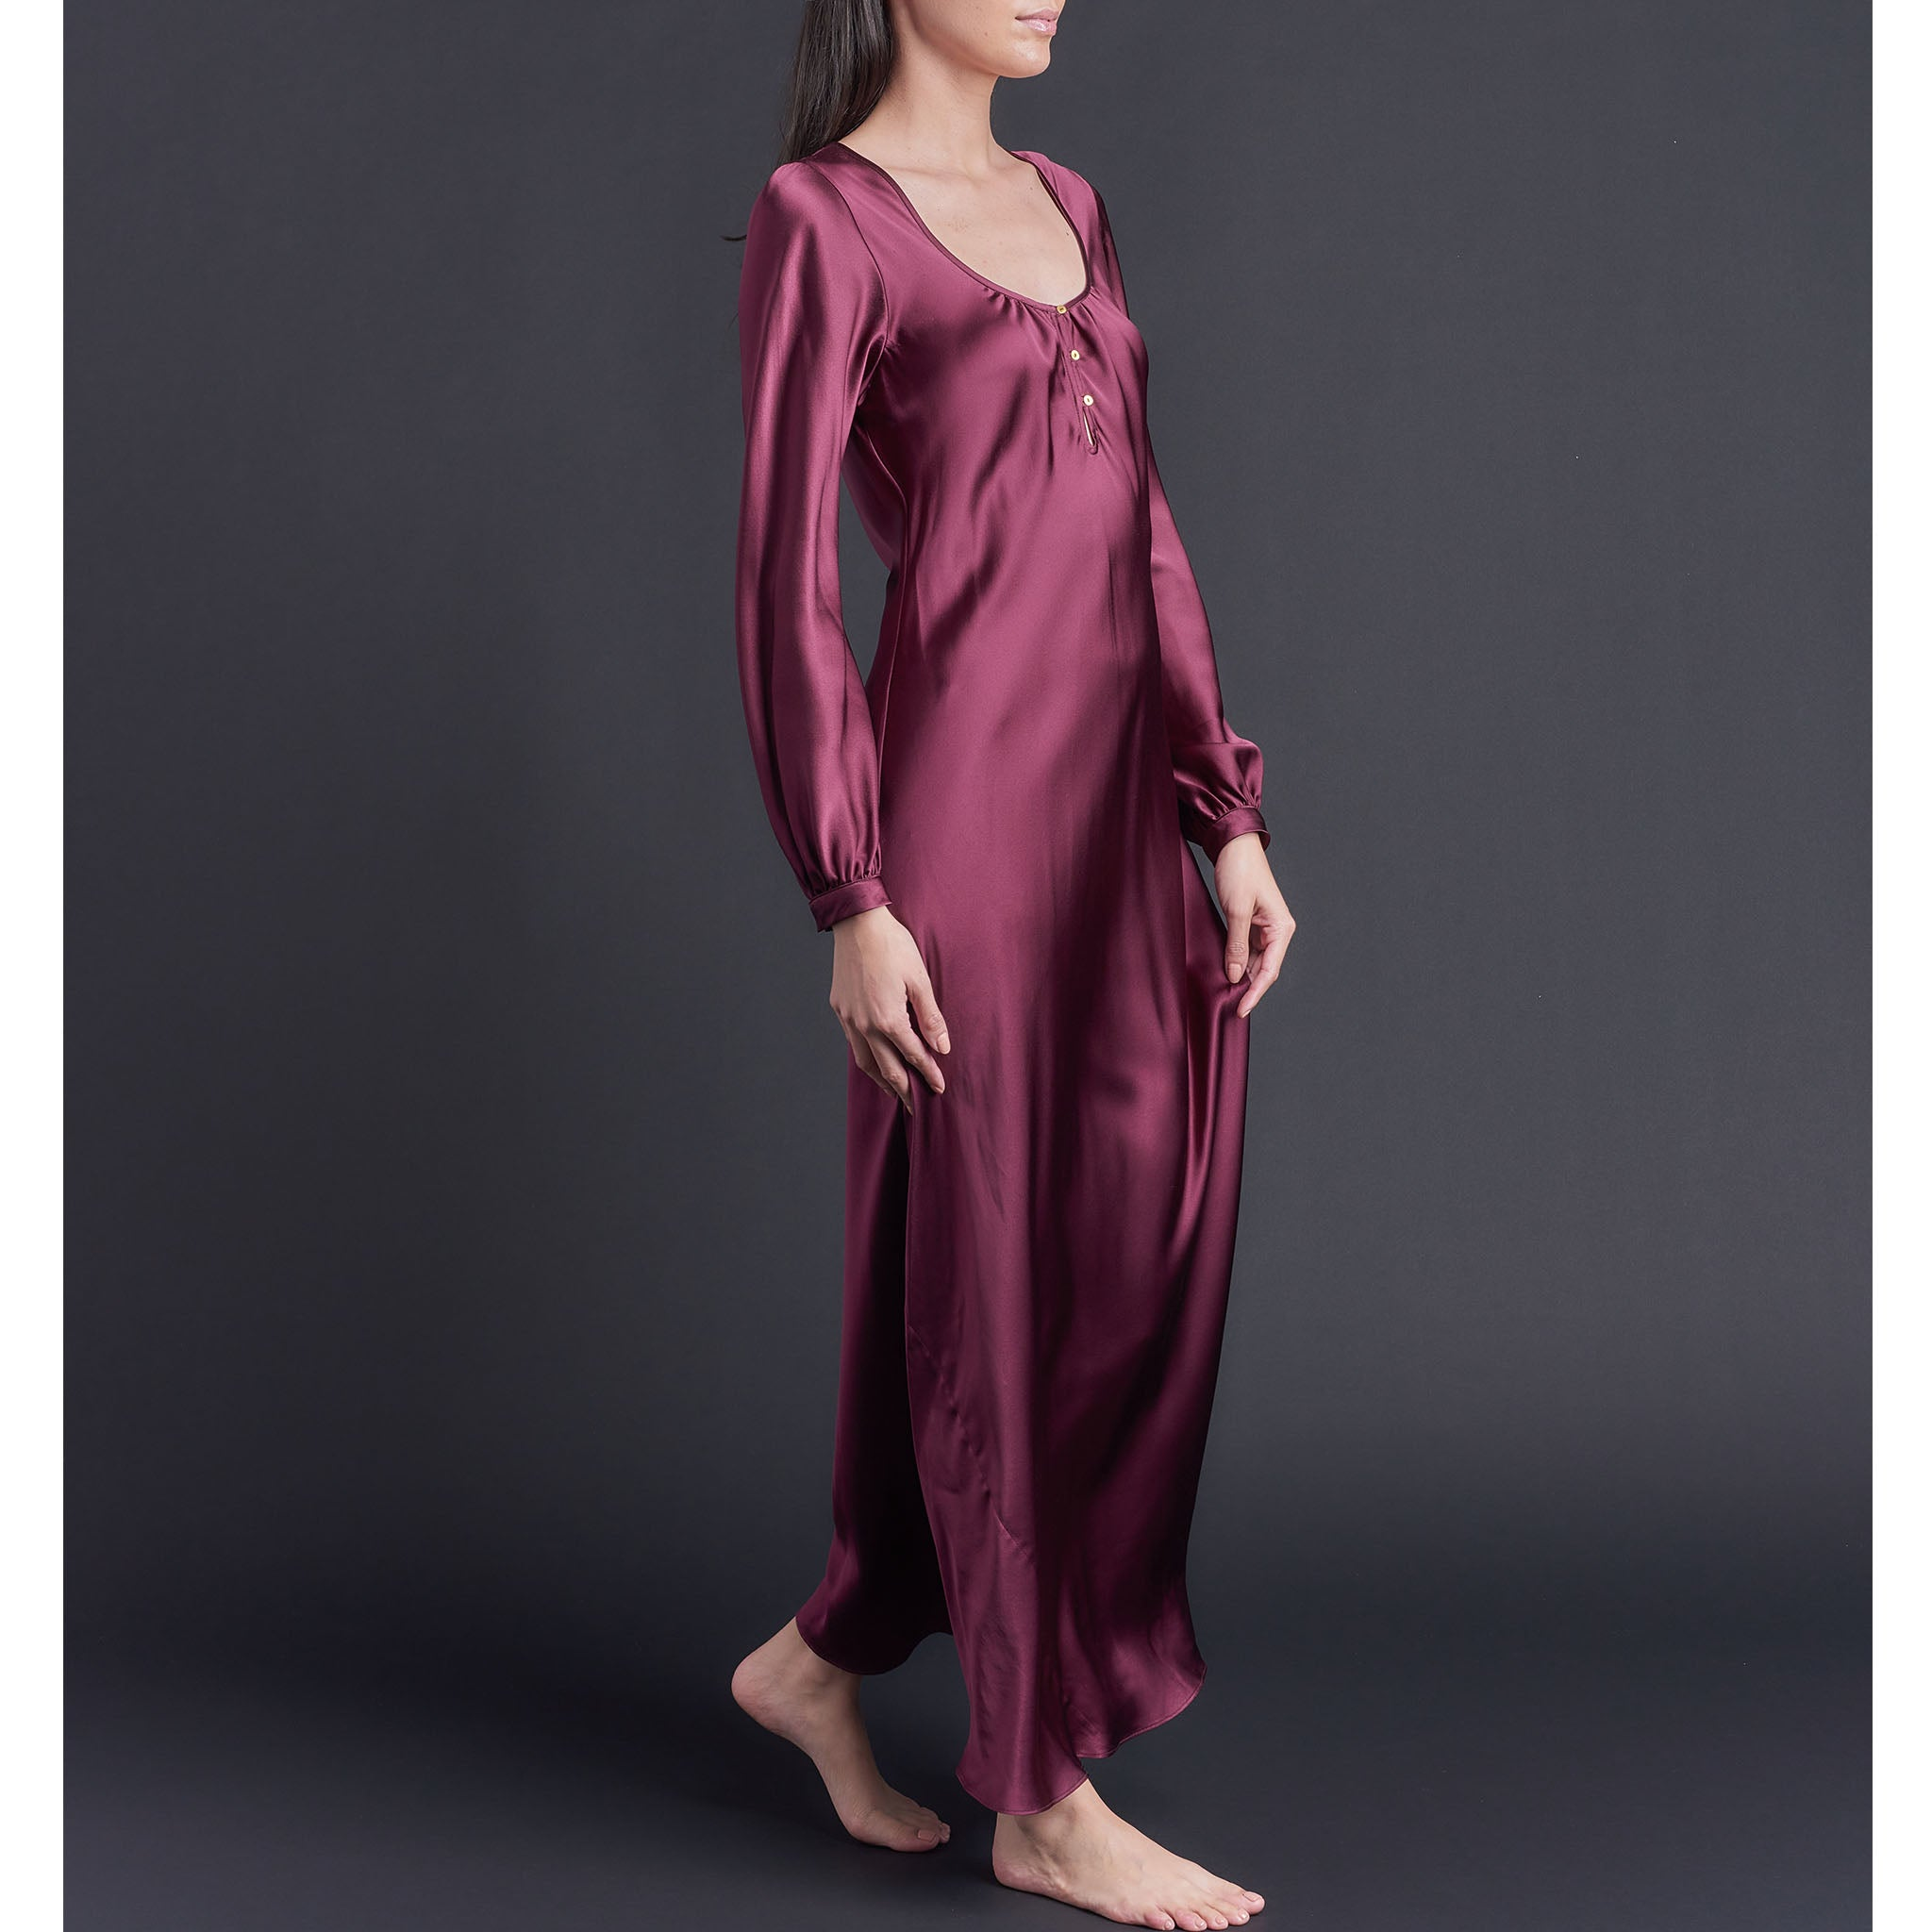 Long Bast Sleep Shirt in Garnet Silk Charmeuse